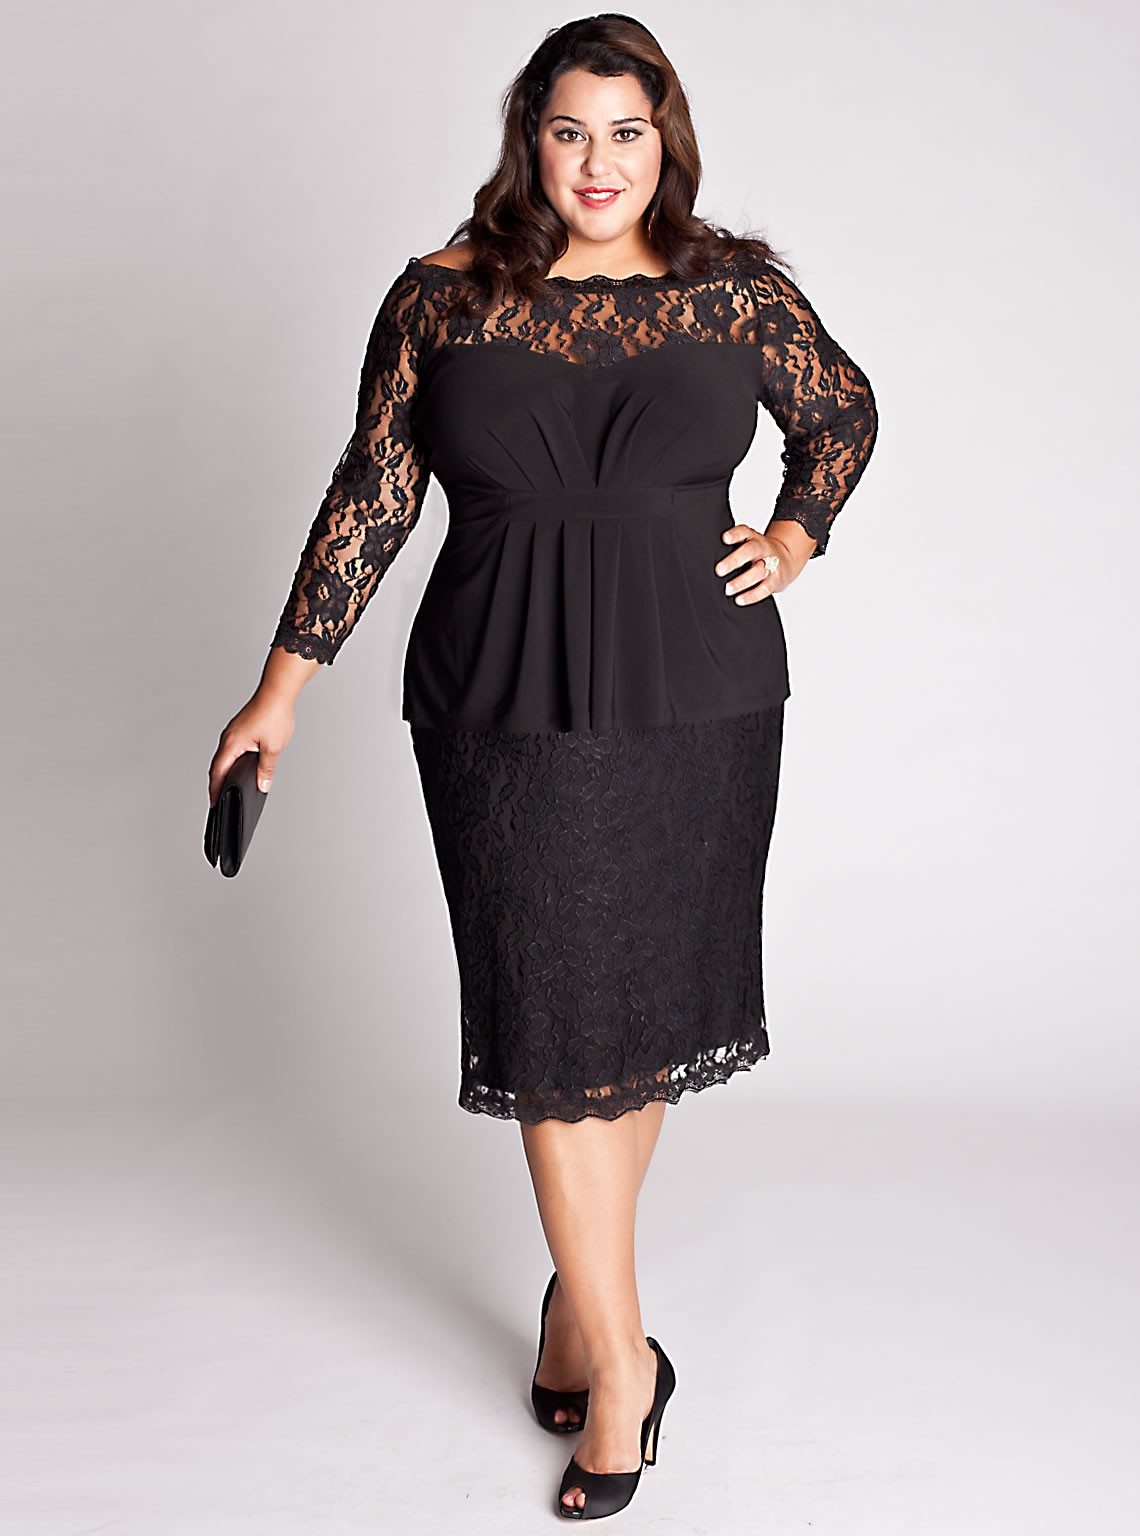 bcfc229bf84 Women Elegant Plus Size Clothing Dresses - Buy Plus Sie Dress